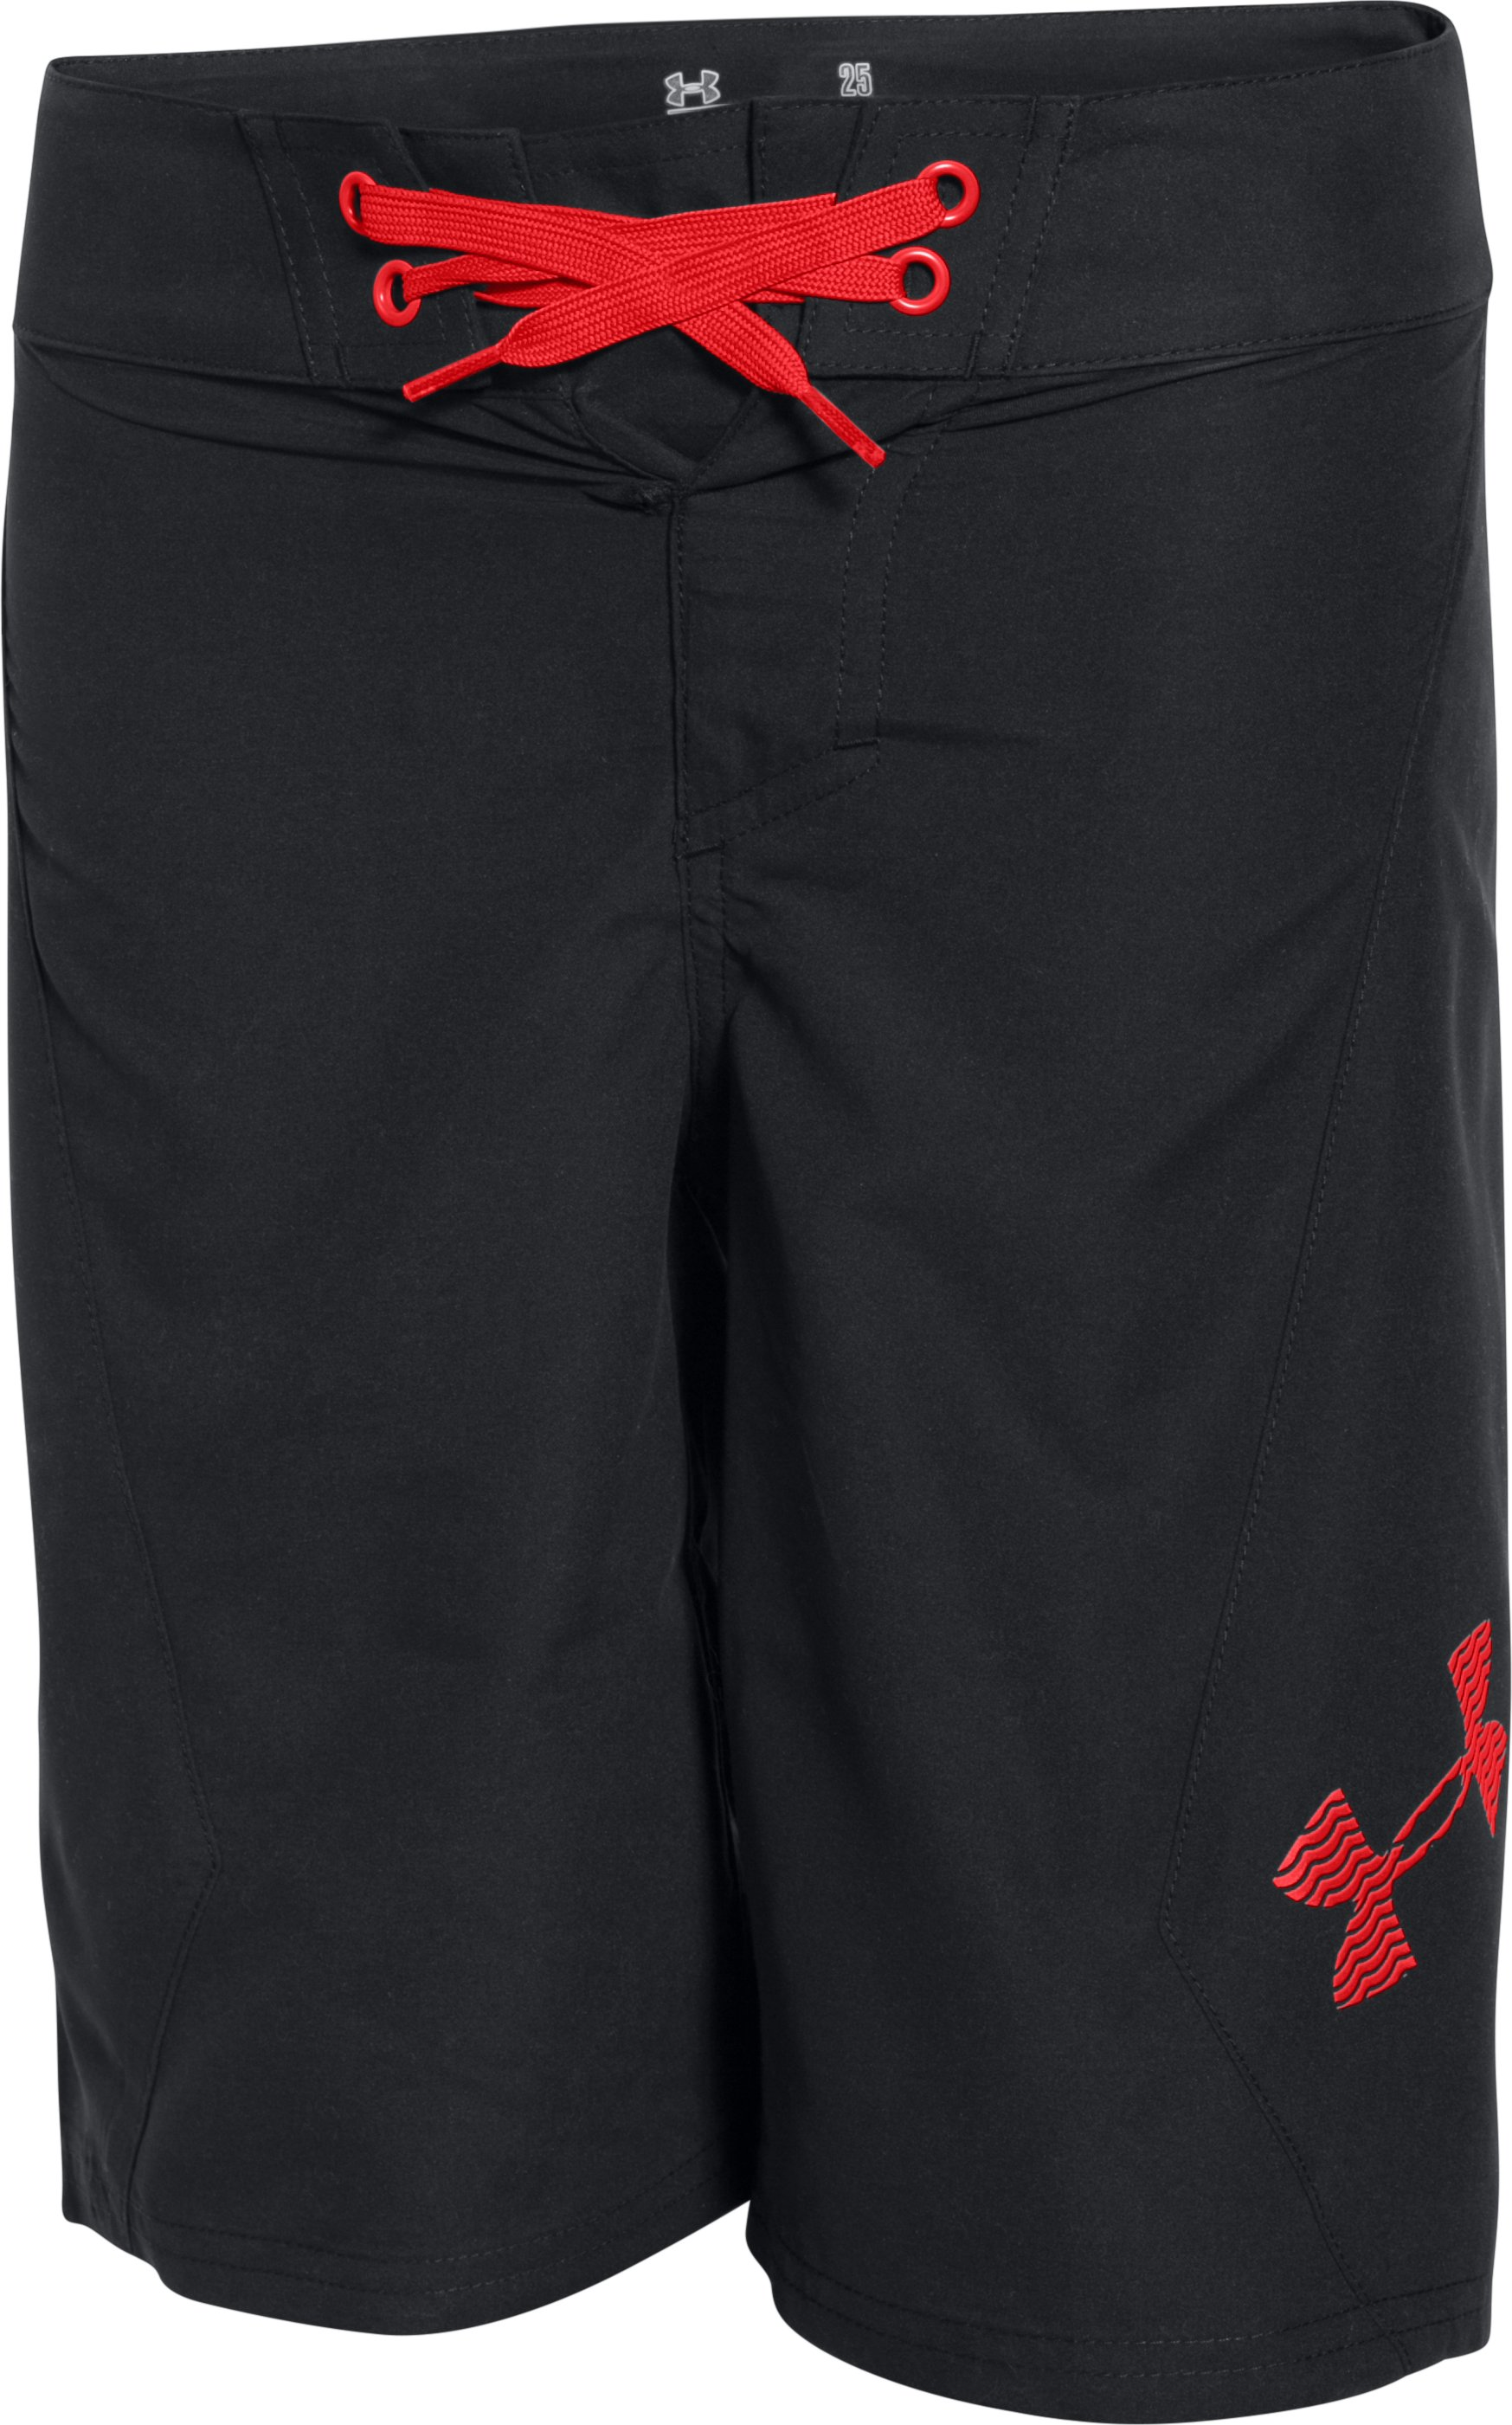 Boys' UA Shorebreak Boardshorts, Black , undefined